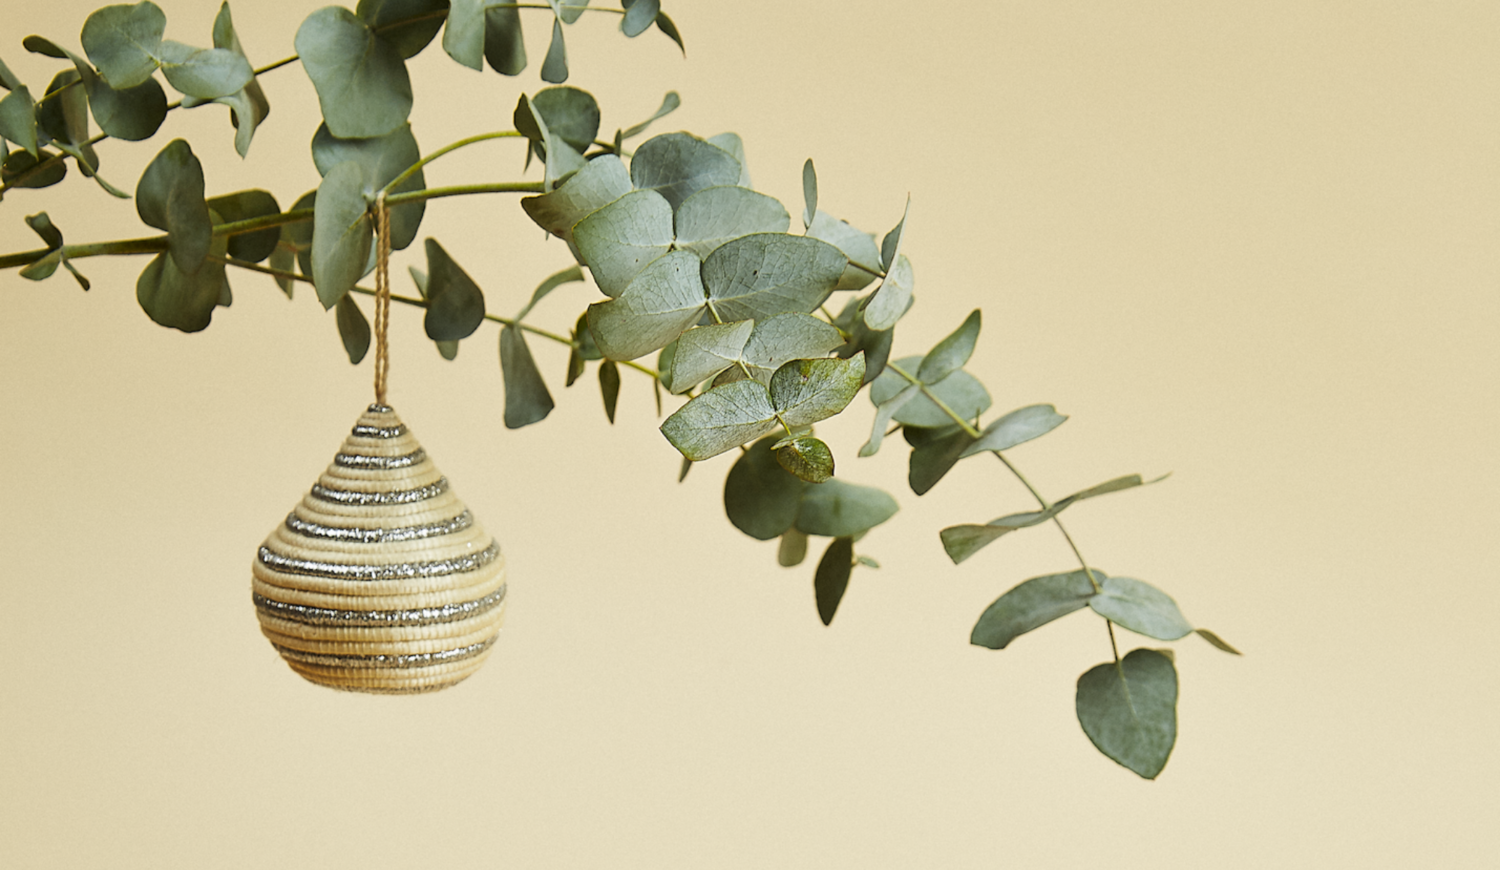 eco friendly gifts that keep giving hero